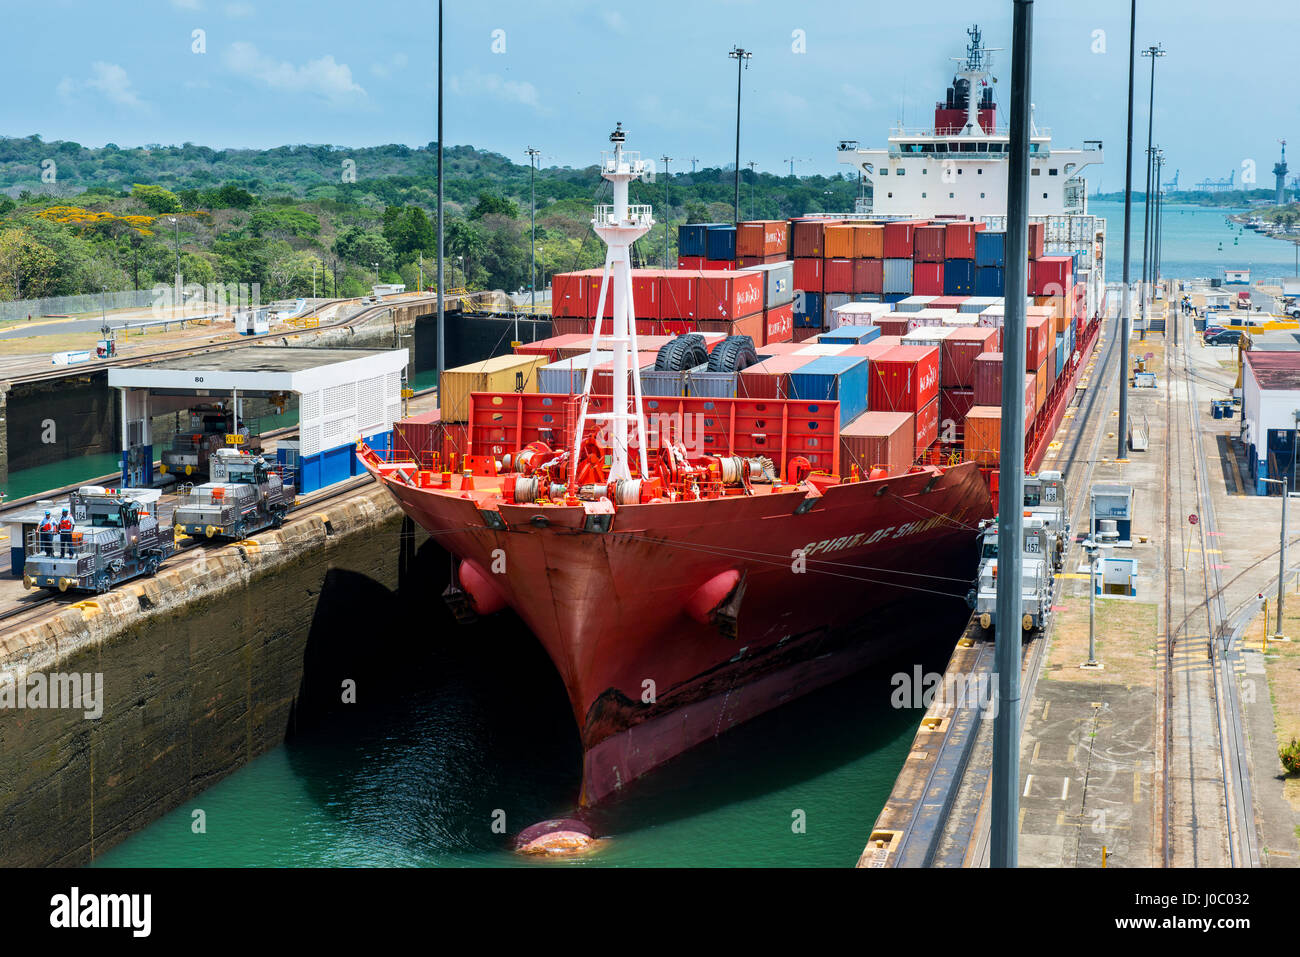 Cargo boats passing the Gatun Locks, Panama Canal, Panama, Central America - Stock Image